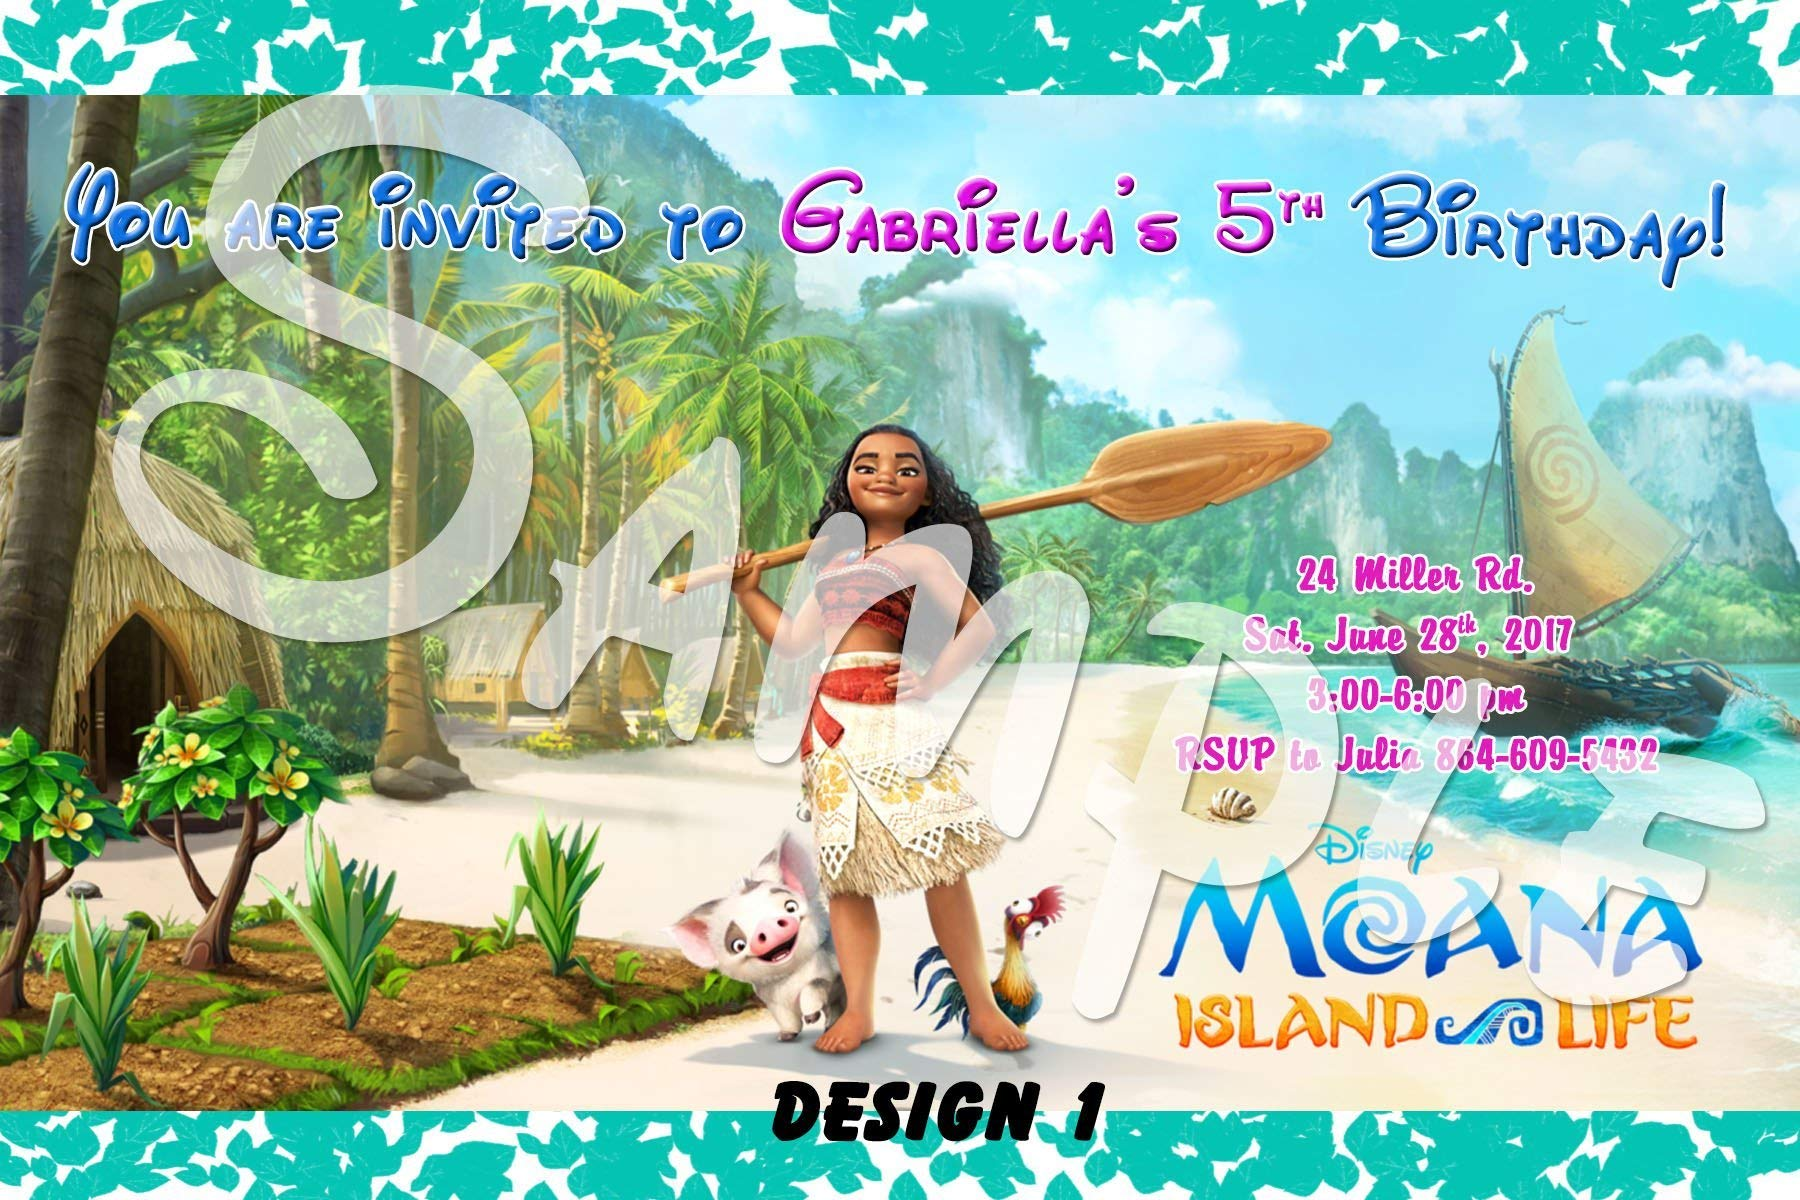 Moana Personalized Birthday Invitations More Designs inside!